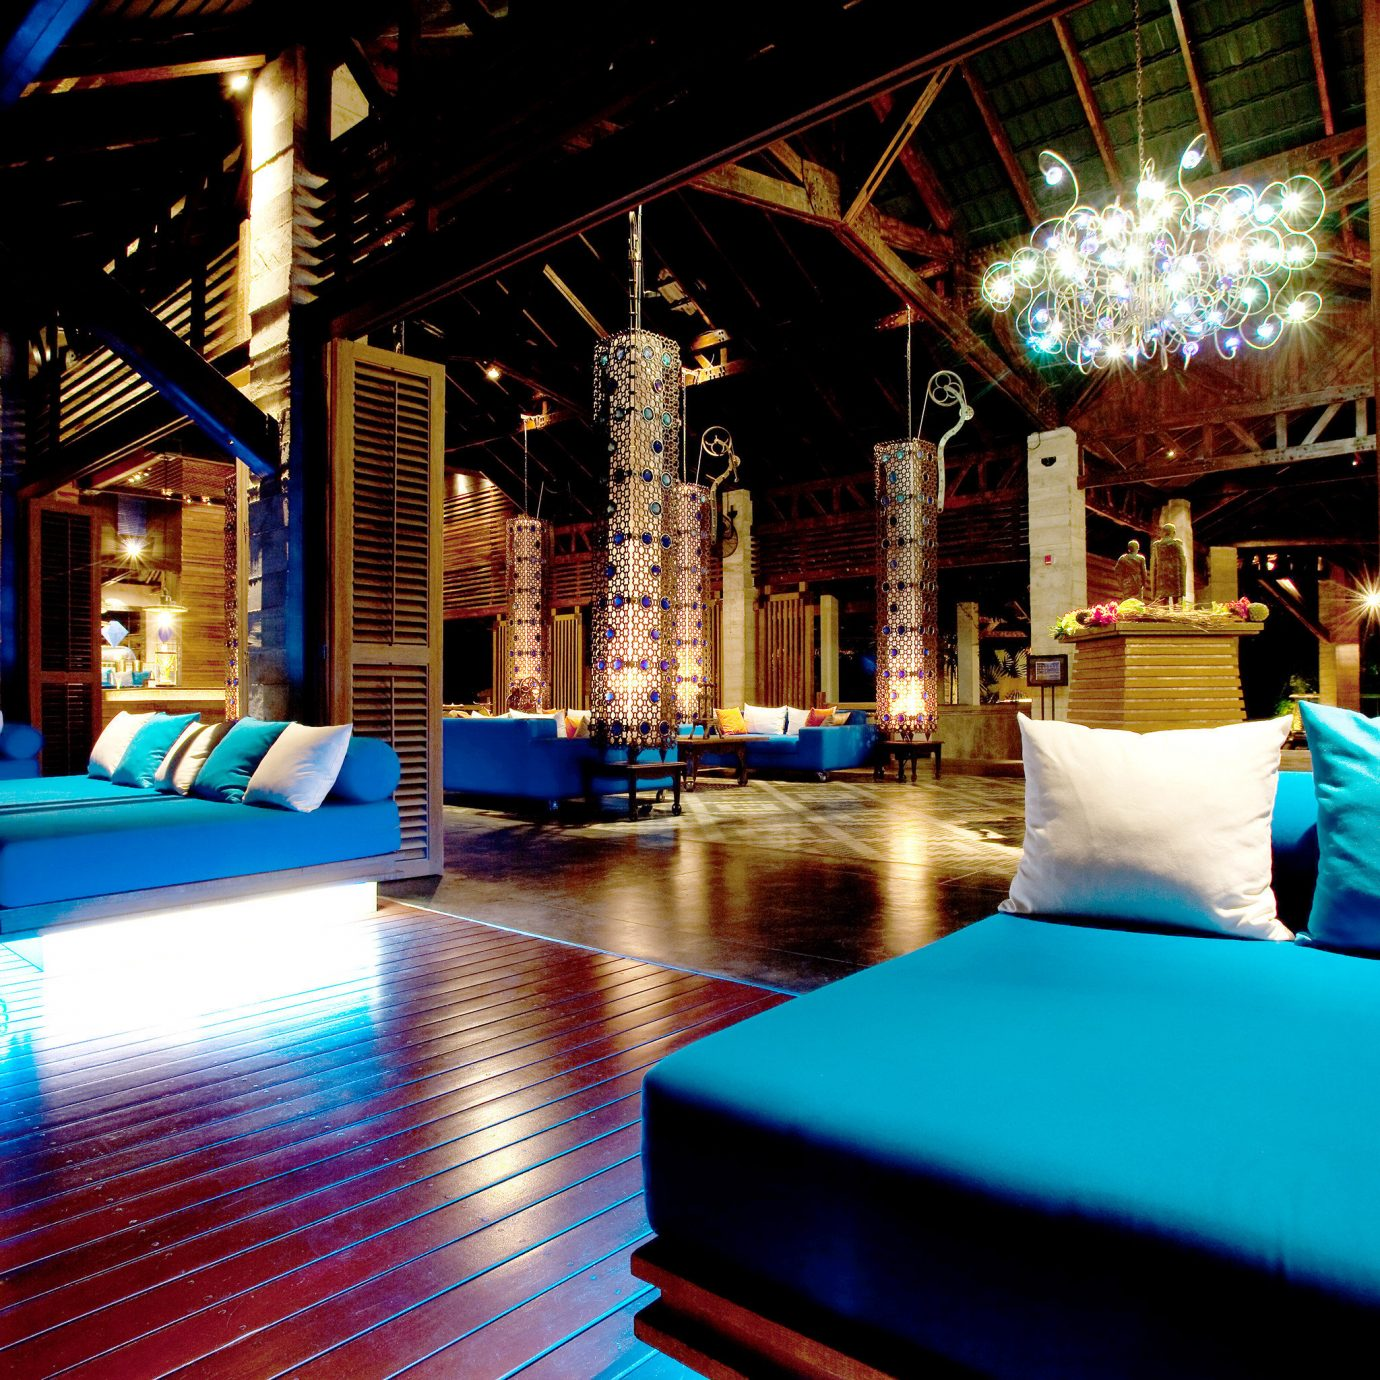 Hip Lounge Luxury Modern Nightlife Romantic light night Bar Resort lighting restaurant swimming pool nightclub